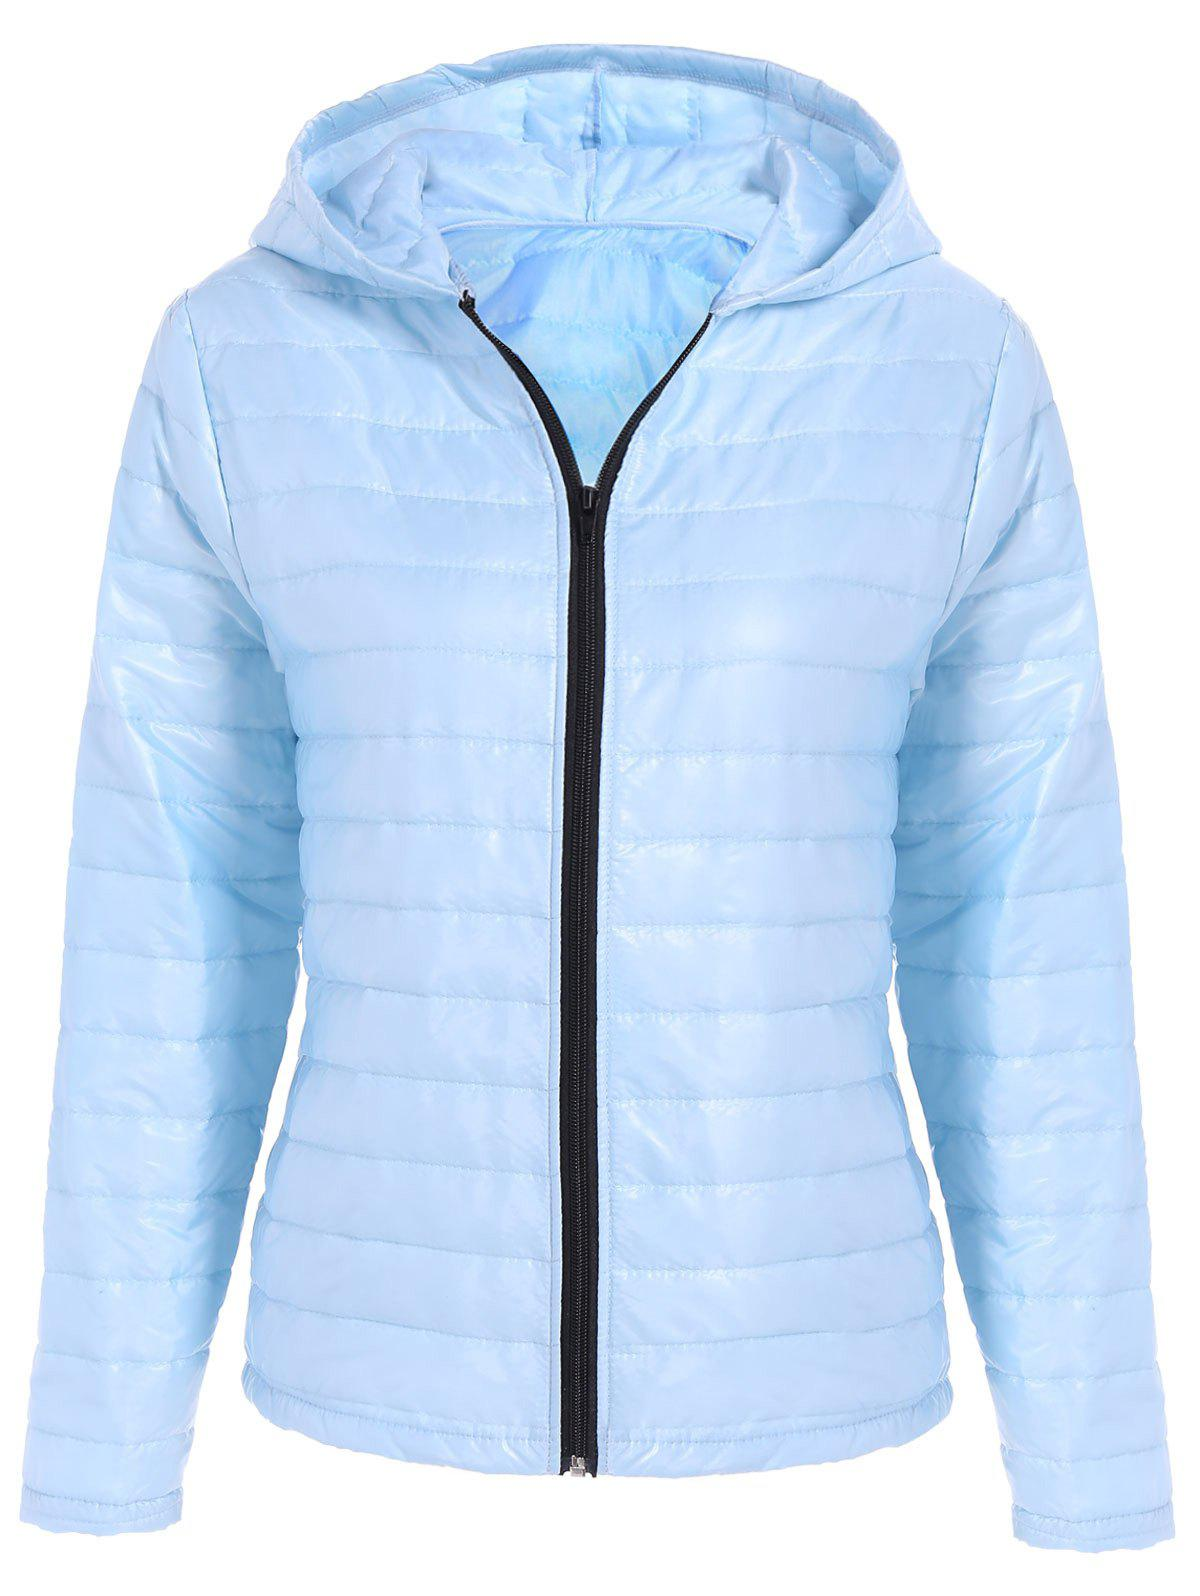 Slim Quilted Winter Jacket with Hood - LIGHT BLUE S